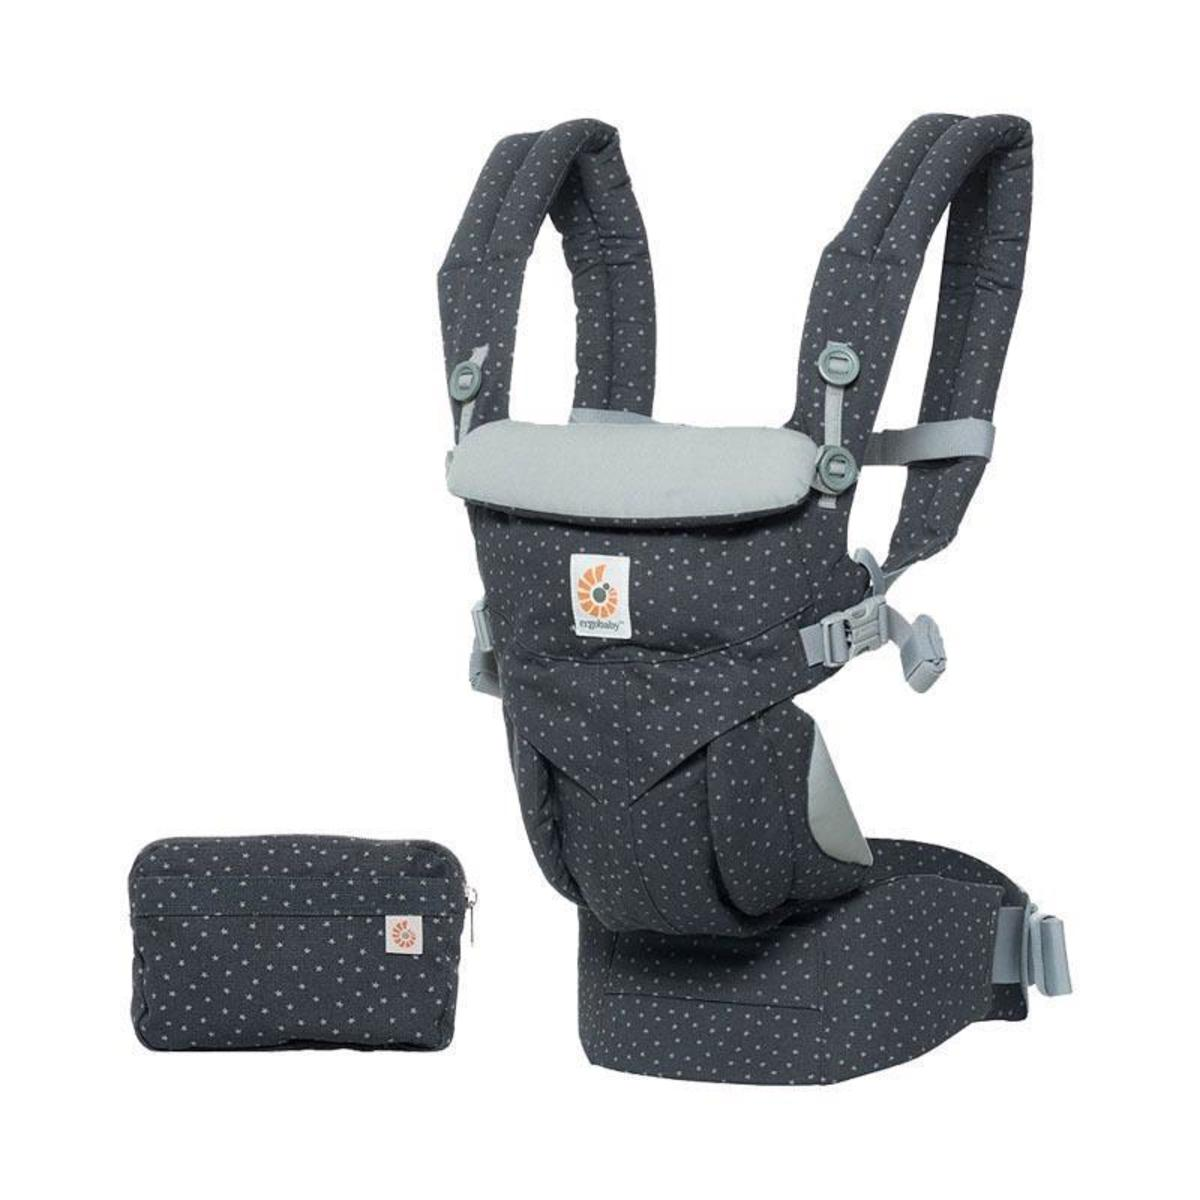 Ergobaby Omni all-stage four-type 360 baby carrier (6 models) - Starry sky